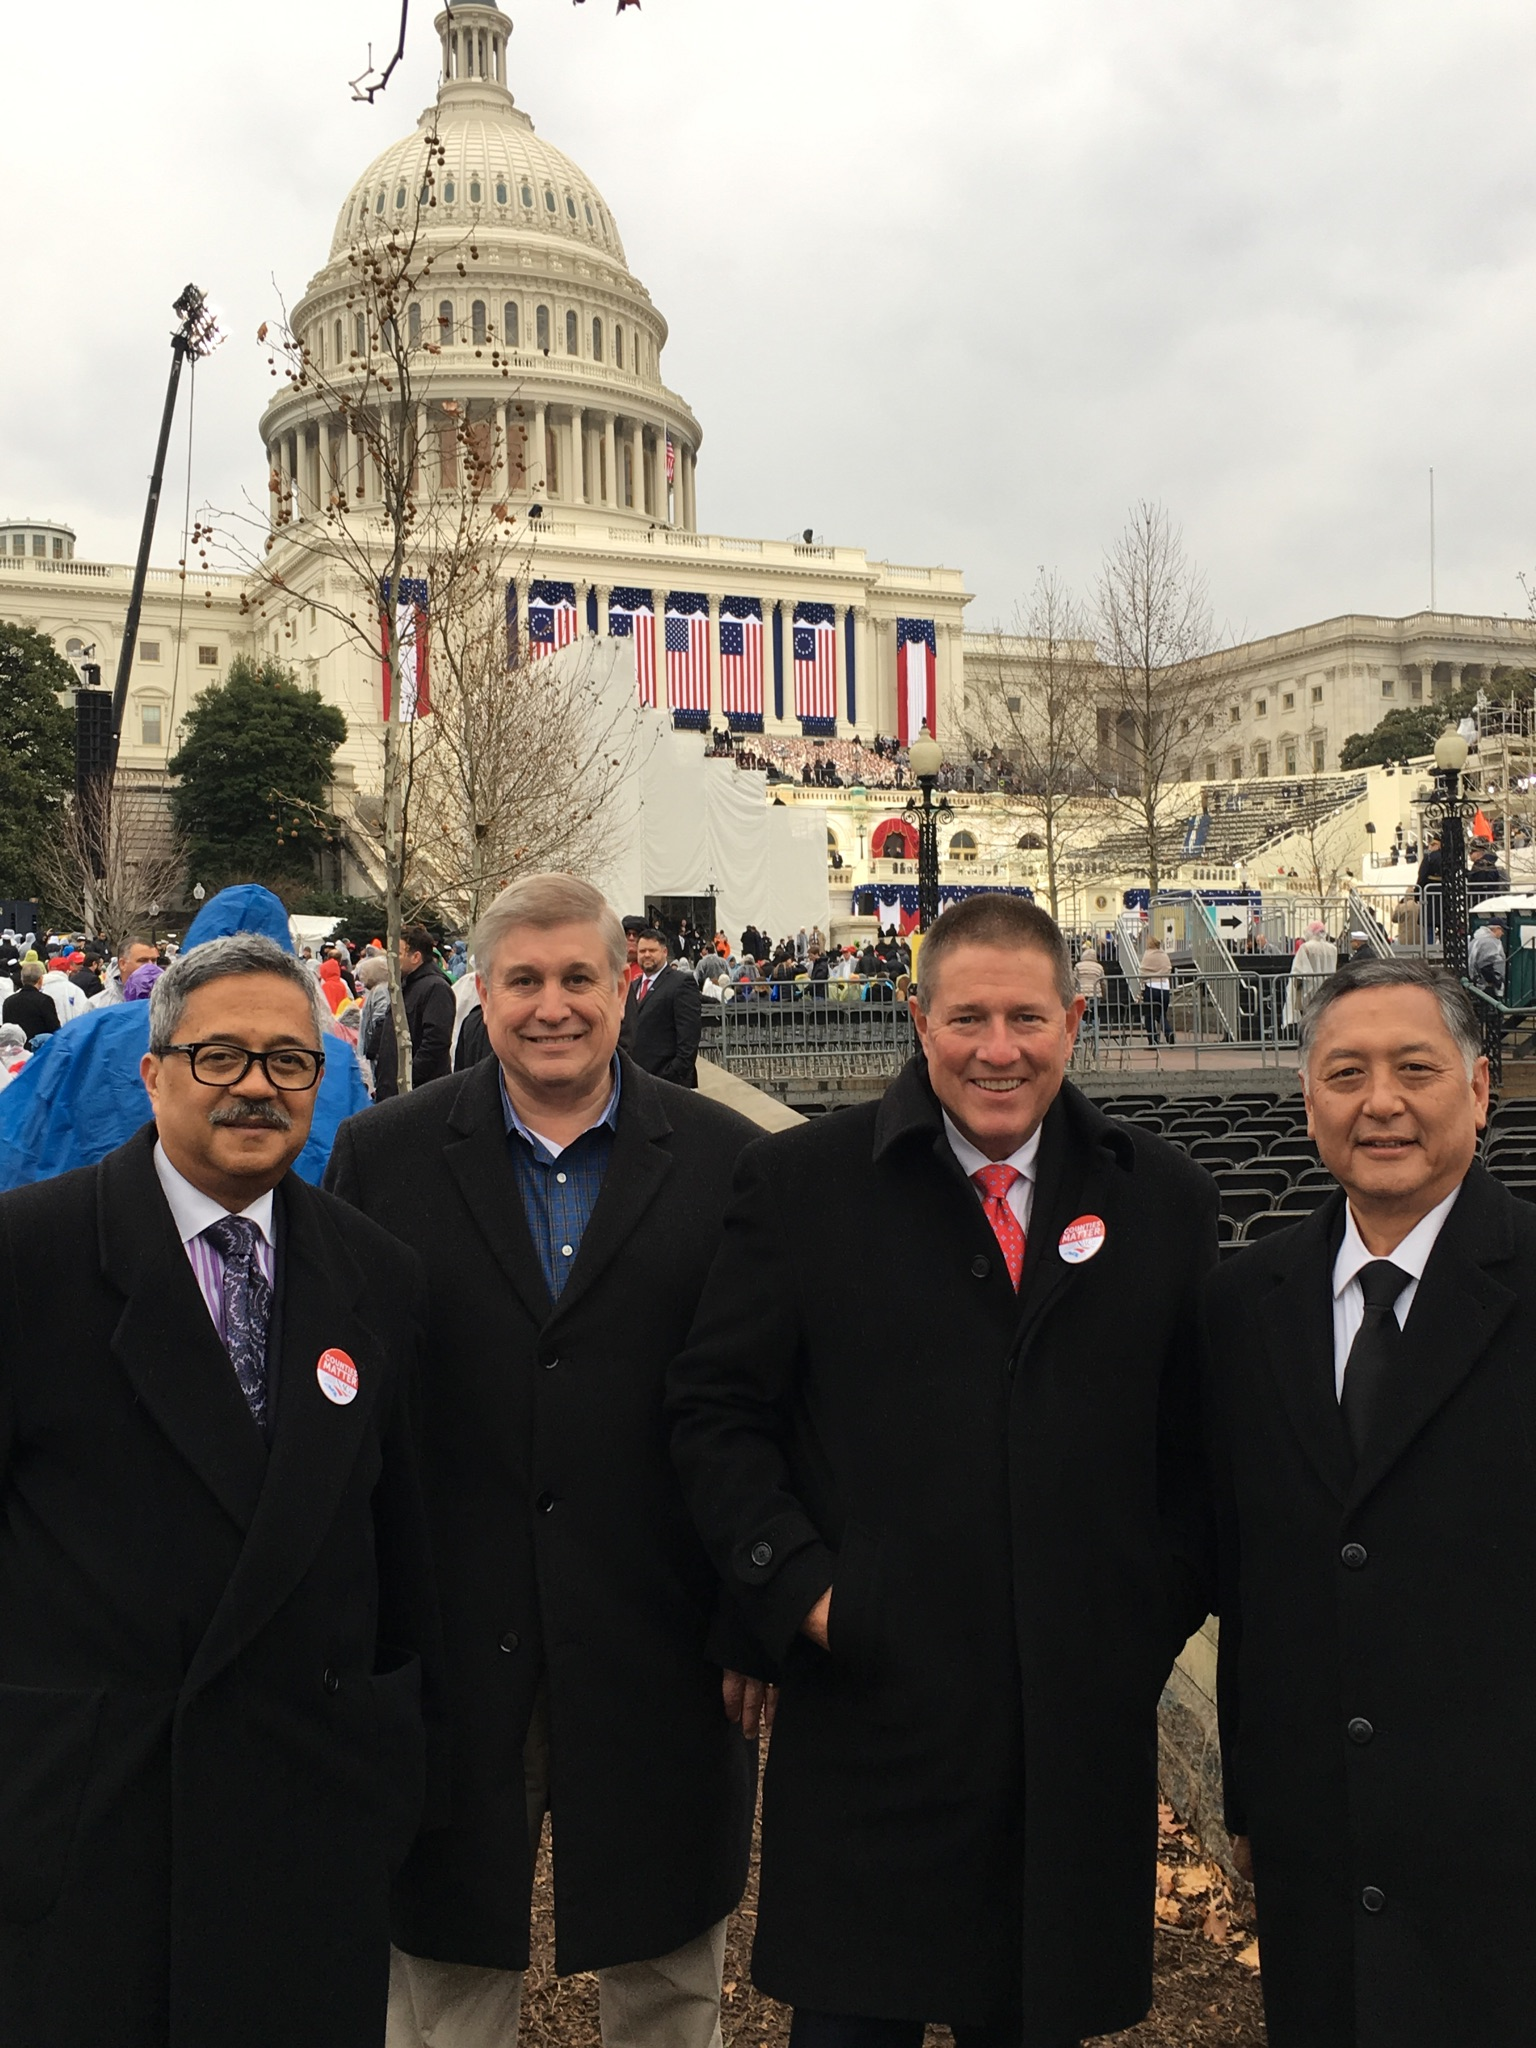 Trump Inauguration w/ NACo Officers